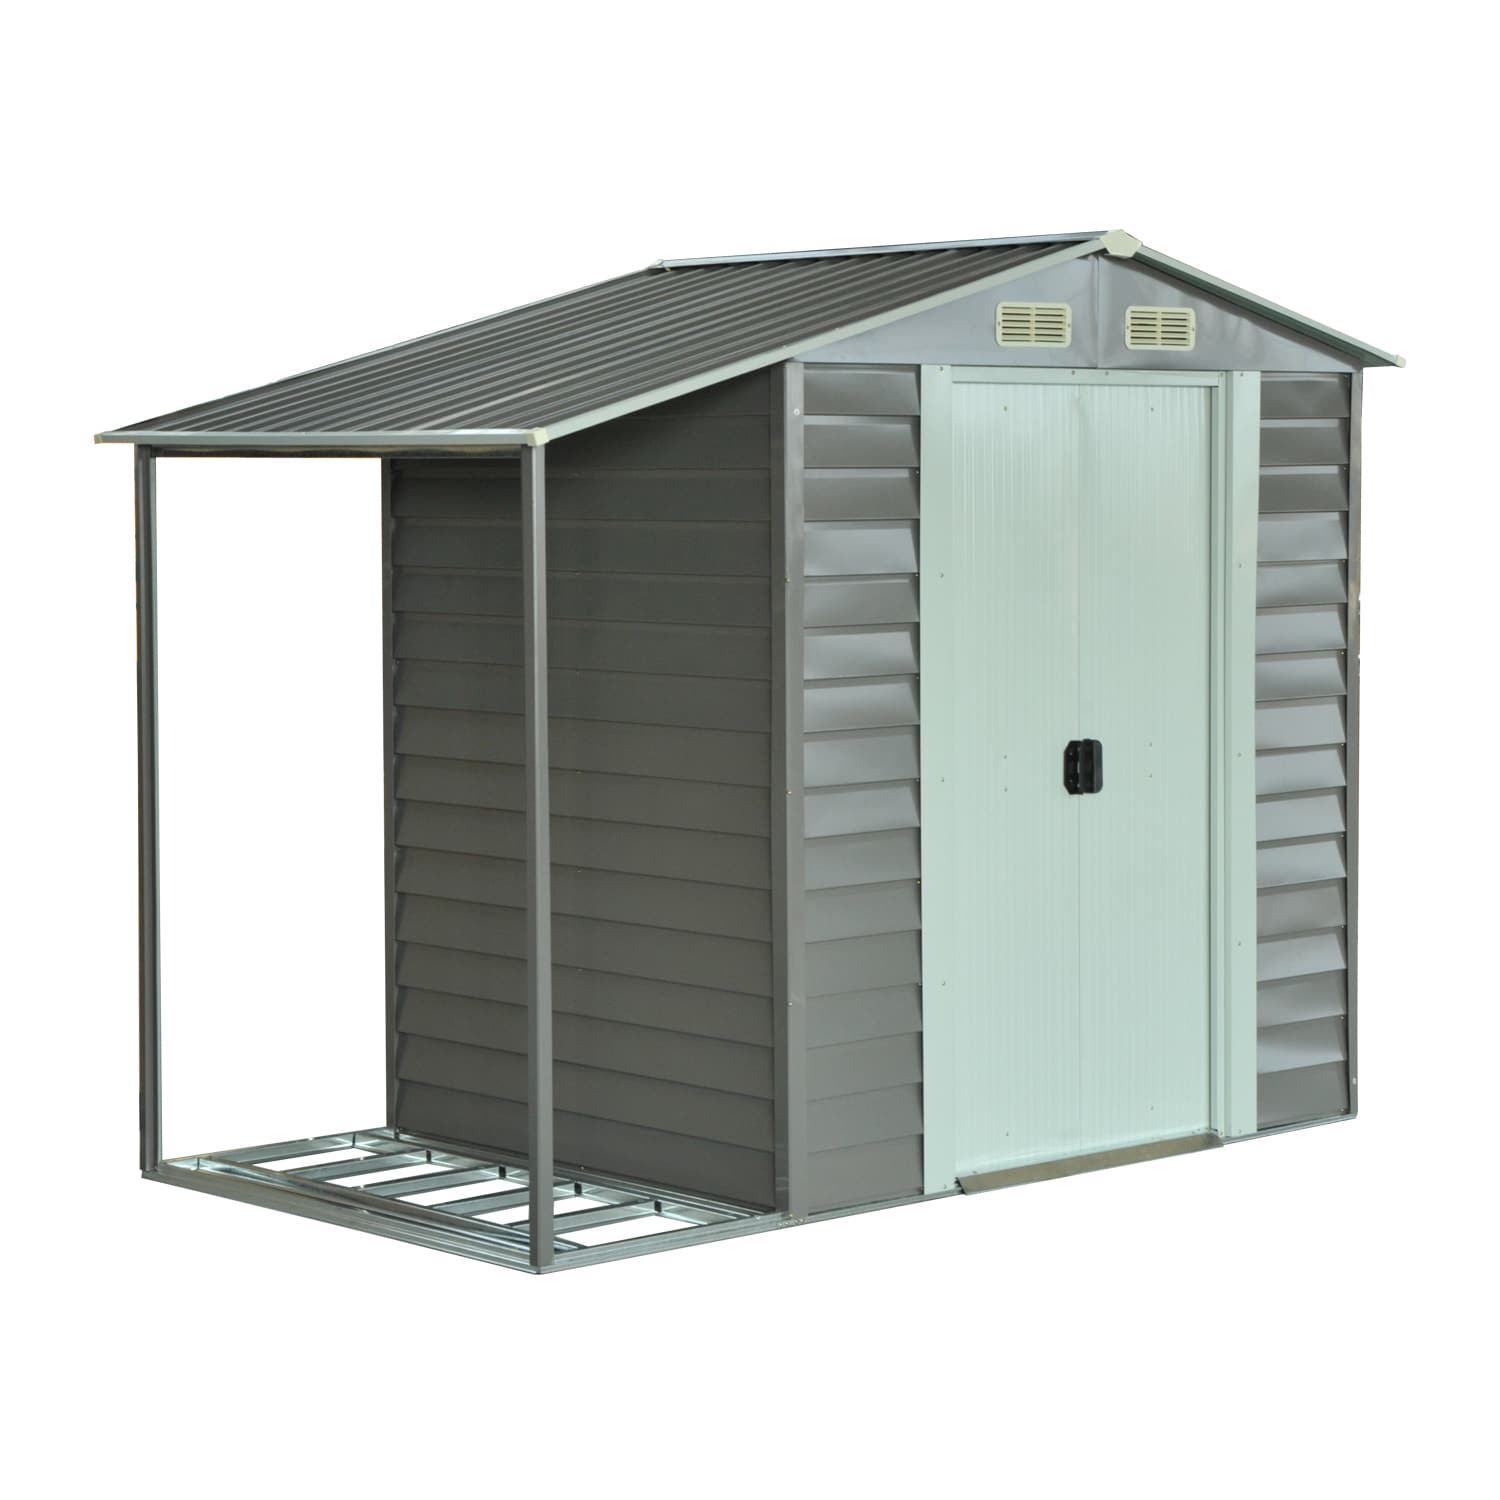 Outsunny Metal 8.5 \'x 5\' Outdoor Garden Storage Shed with Firewood ...